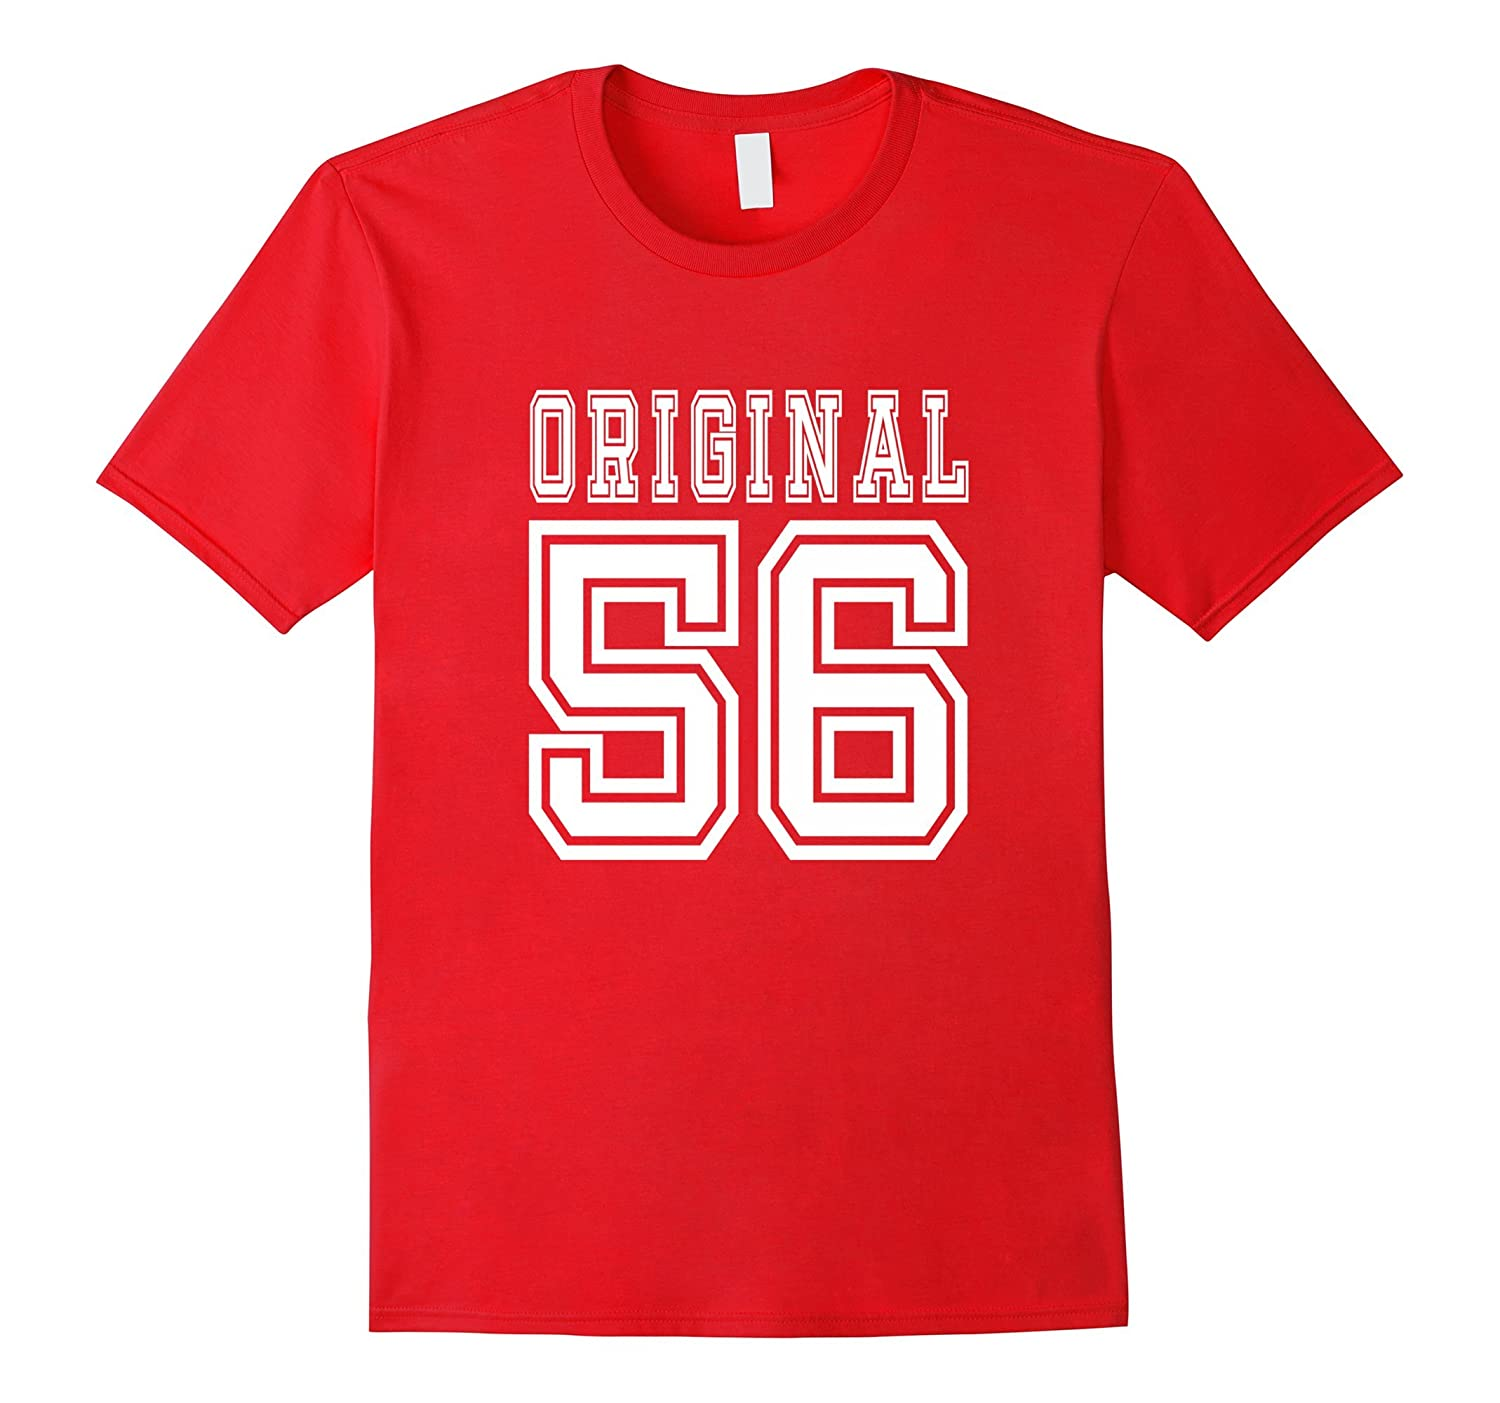 60th Birthday Gift 60 Year Old Present Idea 1956 T Shirt M CL Colamaga